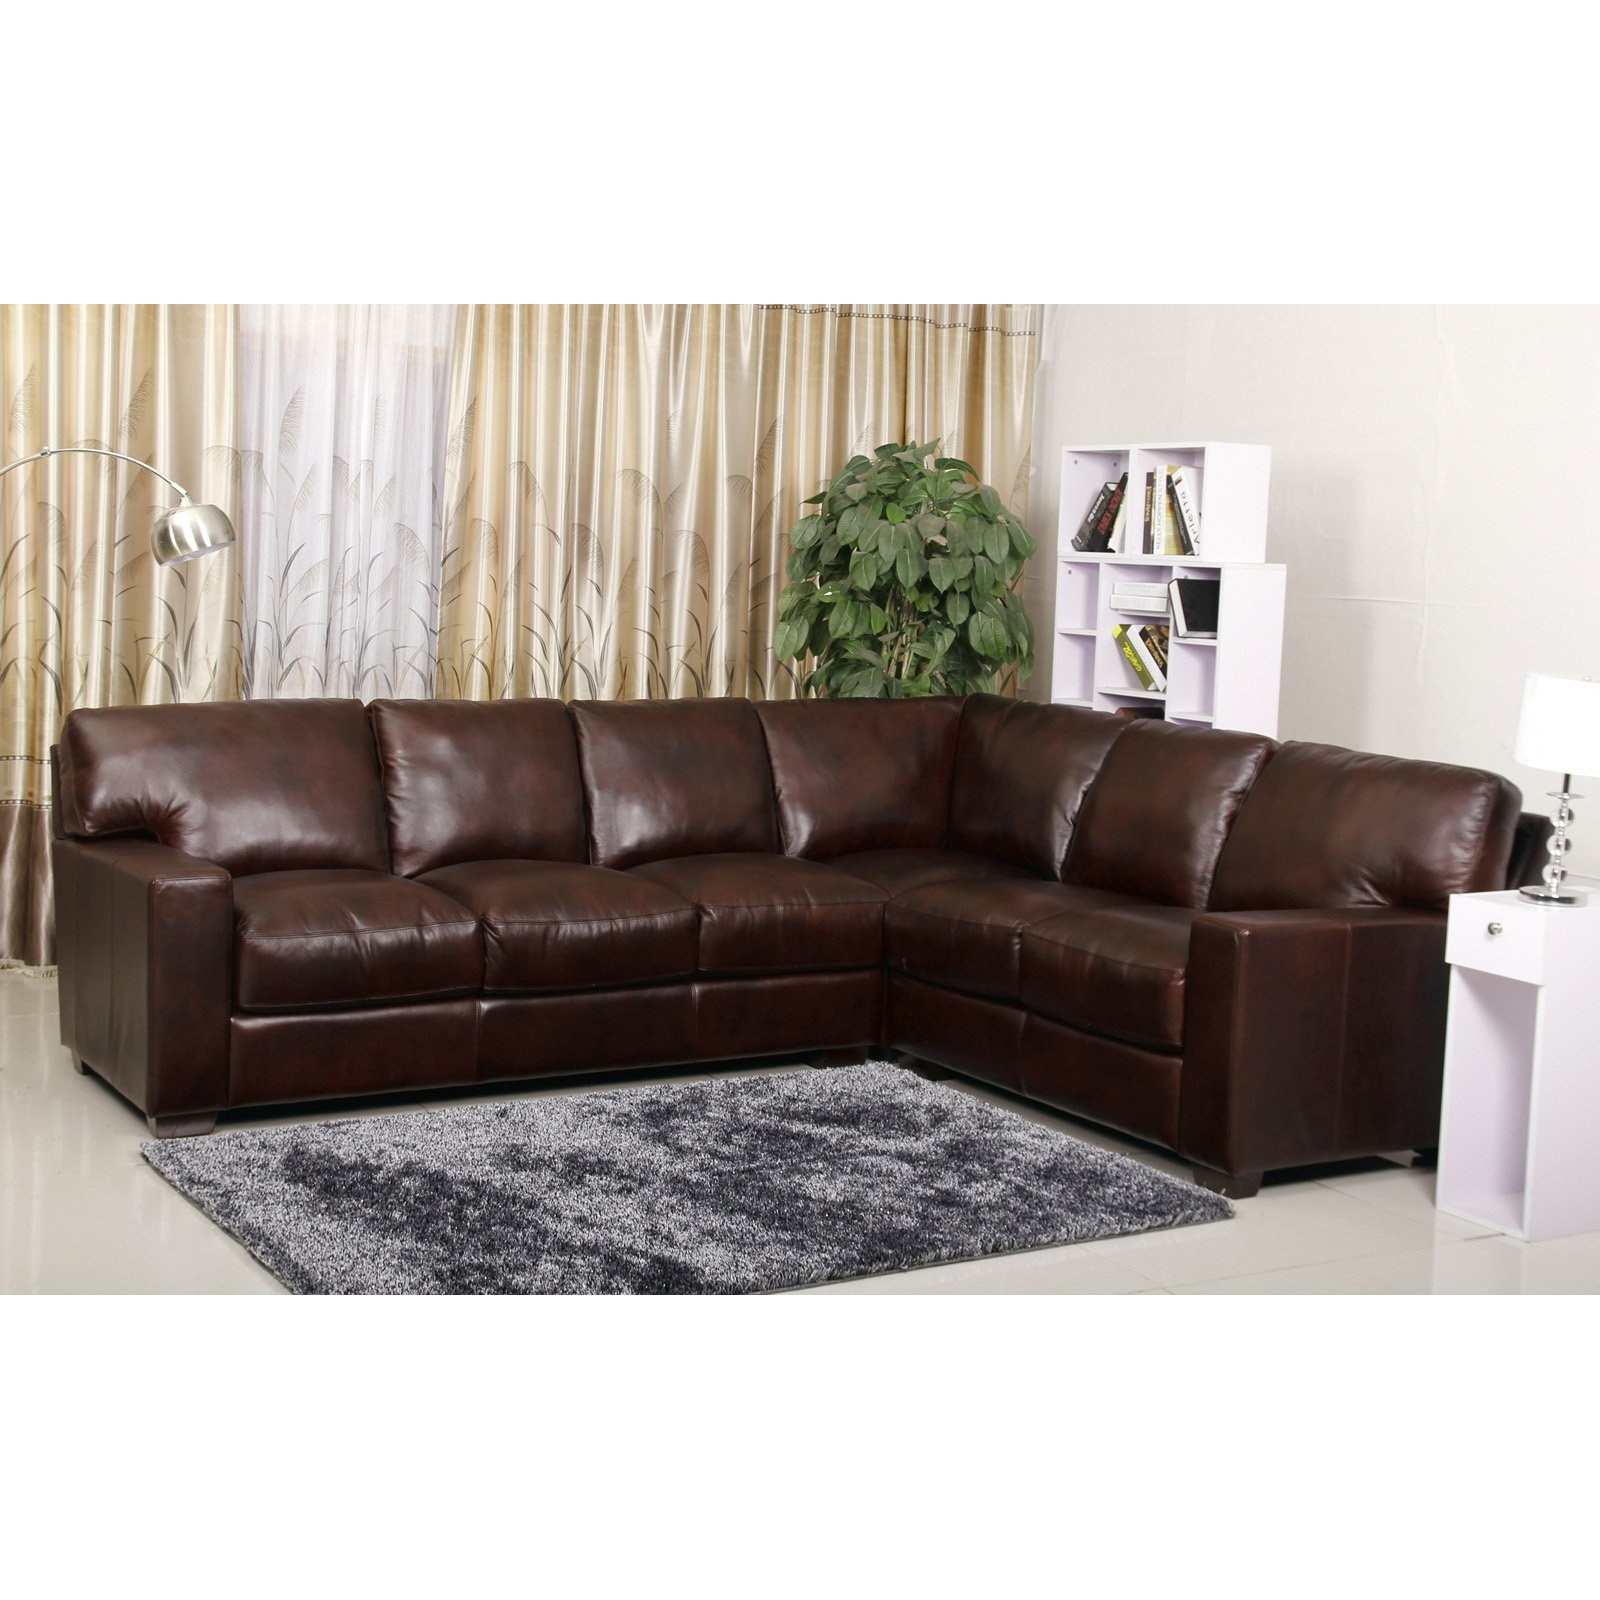 Featured Image of Abbyson Sectional Sofa